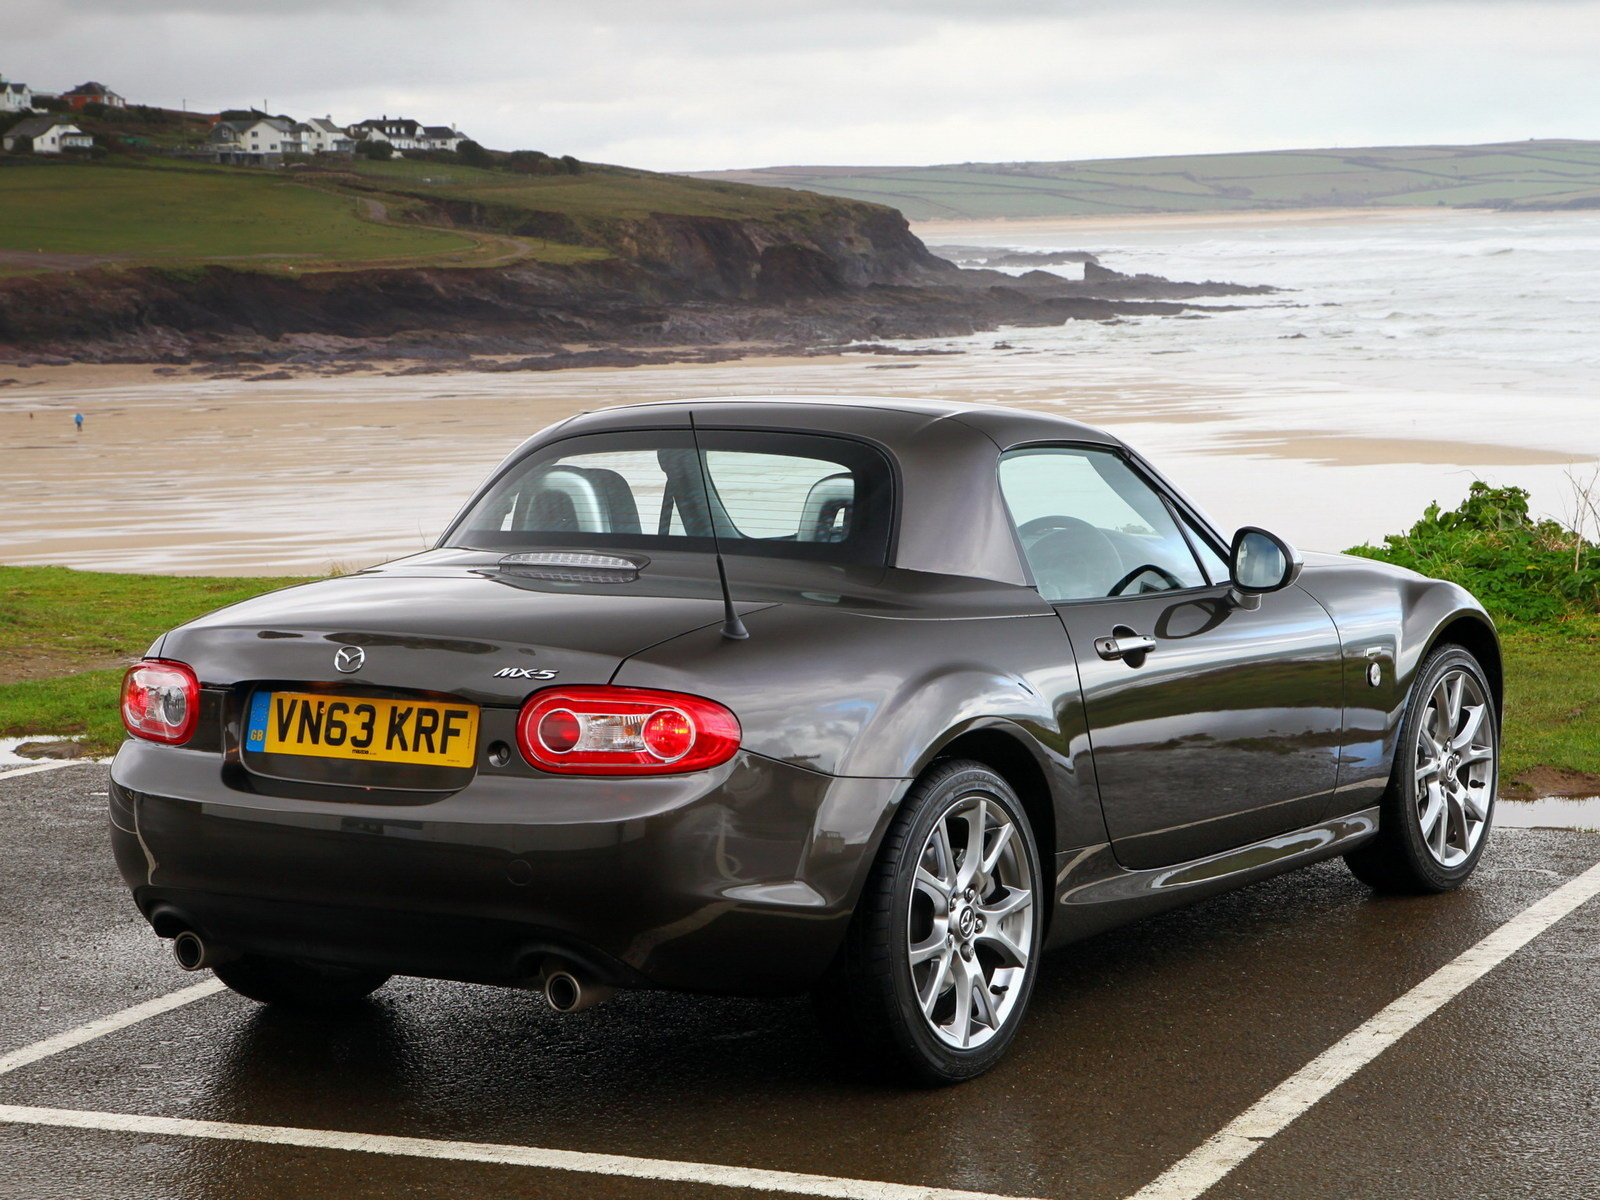 2014 mazda mx 5 sport venture picture 541650 car review top speed. Black Bedroom Furniture Sets. Home Design Ideas